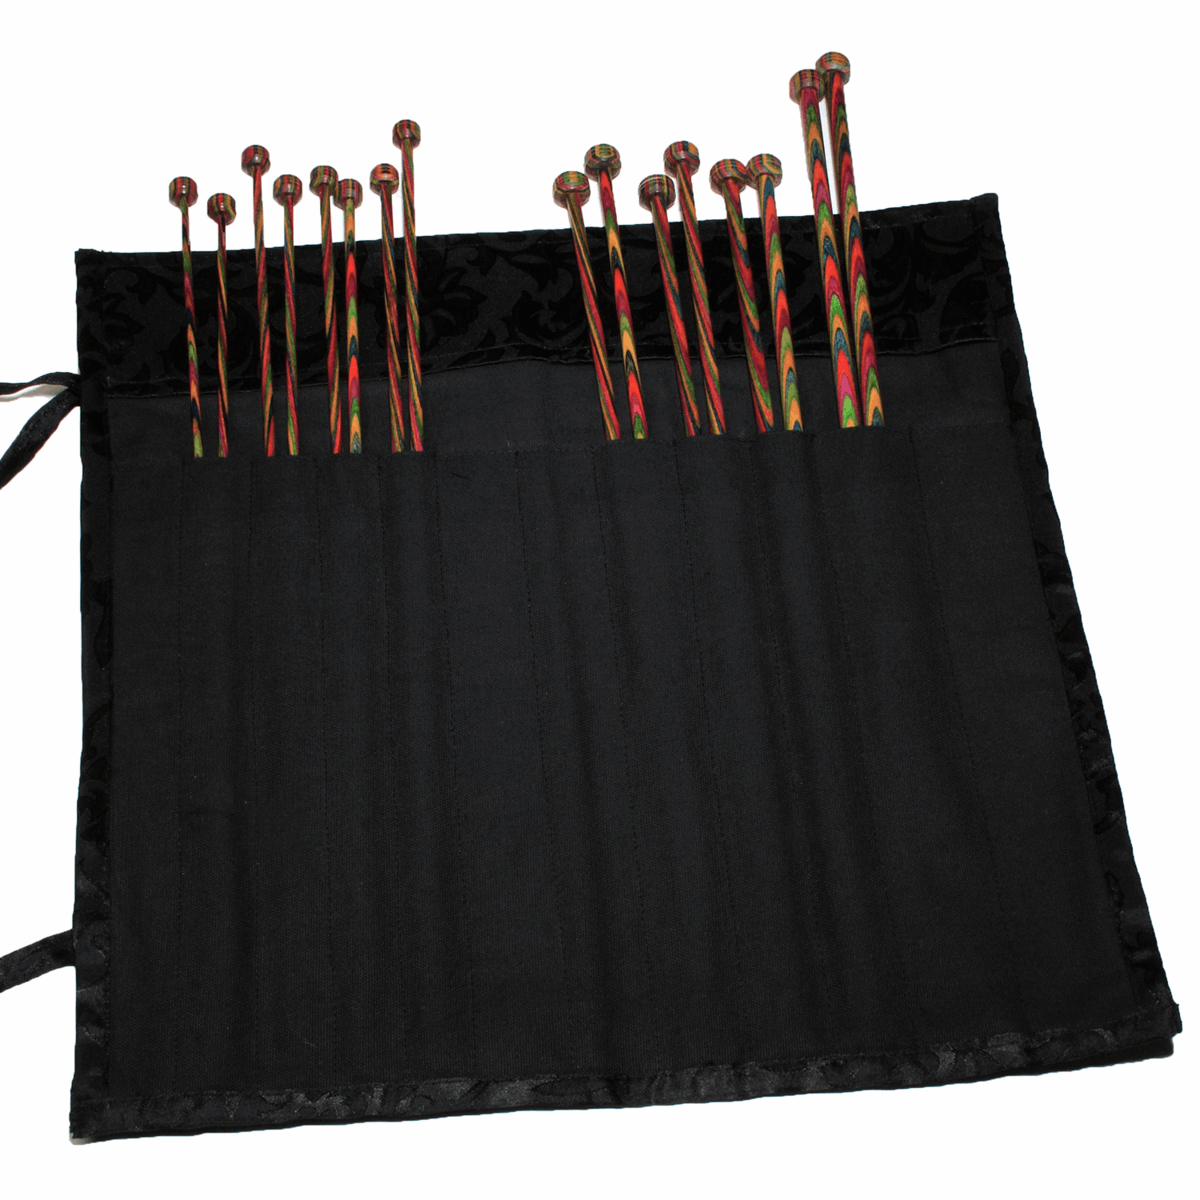 Picture of Fabric Knitting Pin Case: Black Jacquard Wrap-Around: 25cm